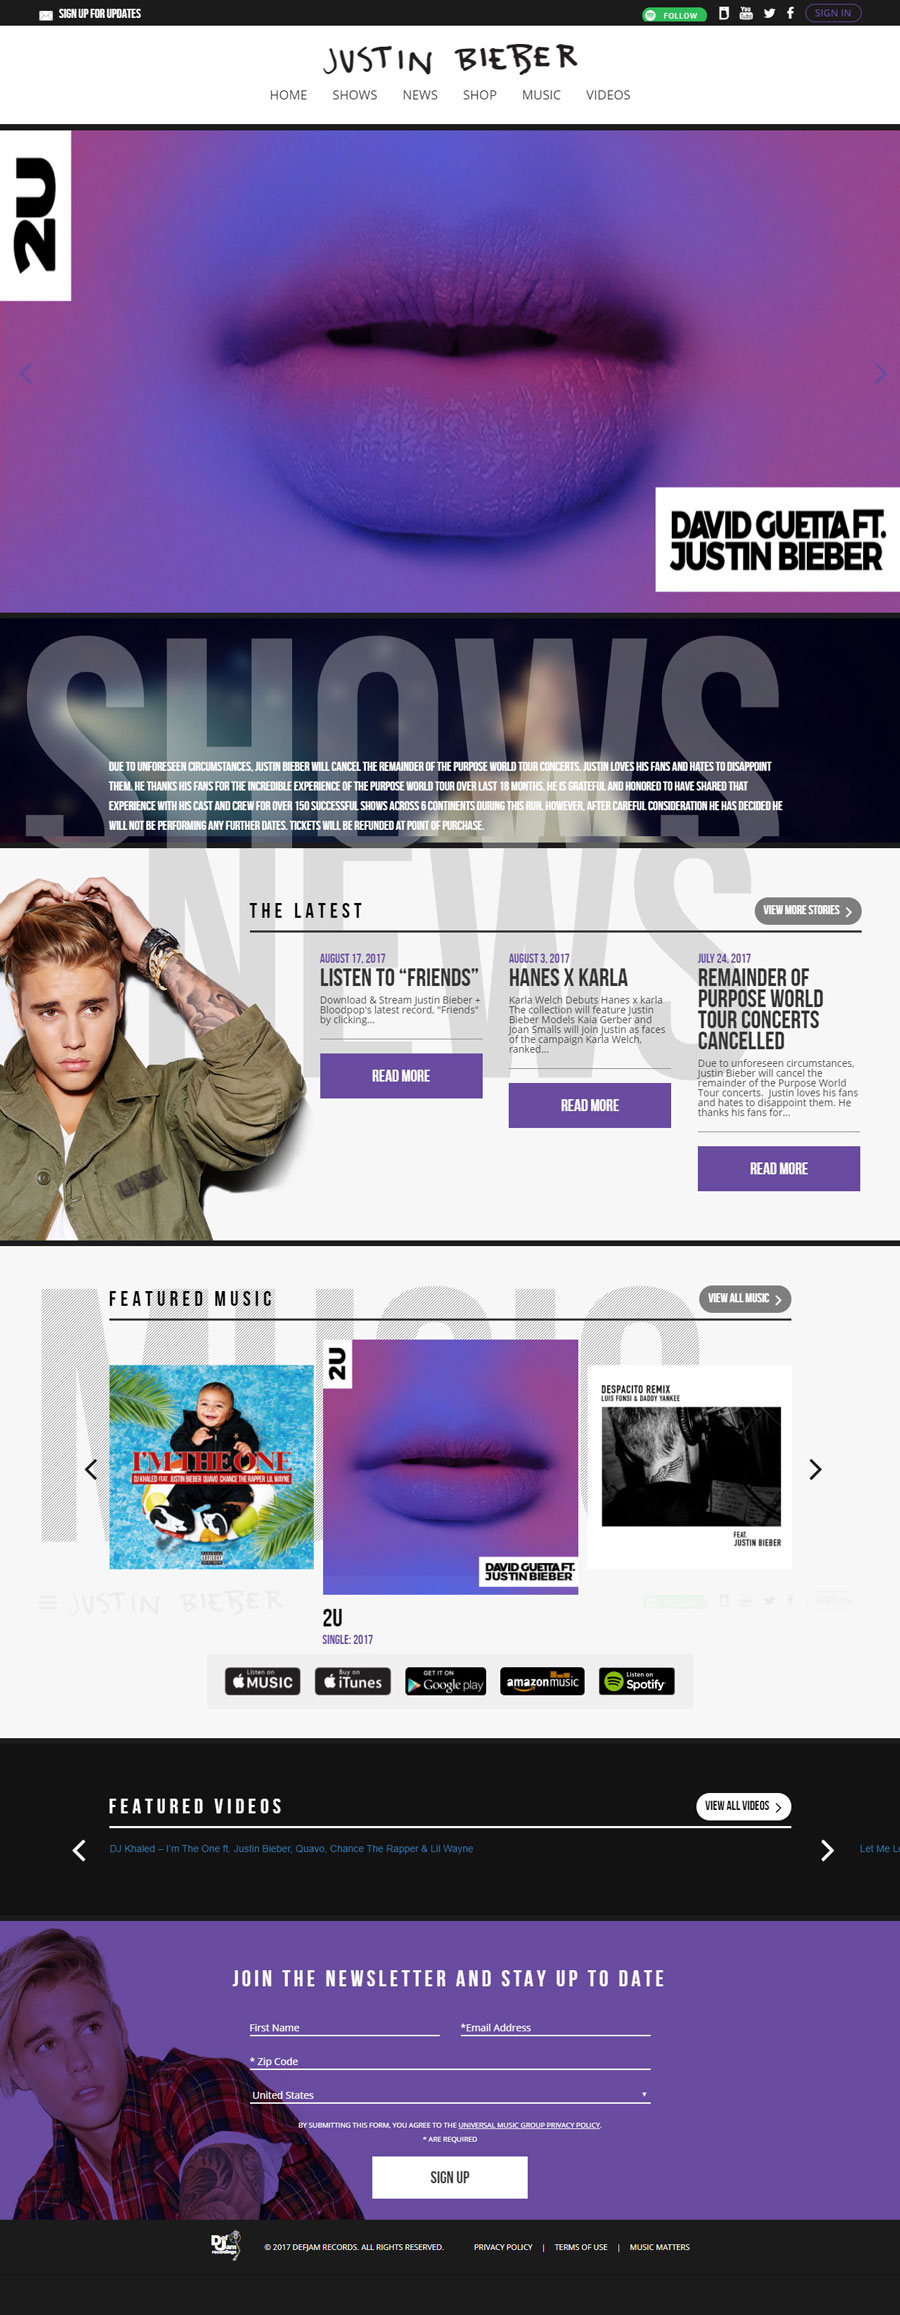 Justin Bieber Singer Celebrity Website Design